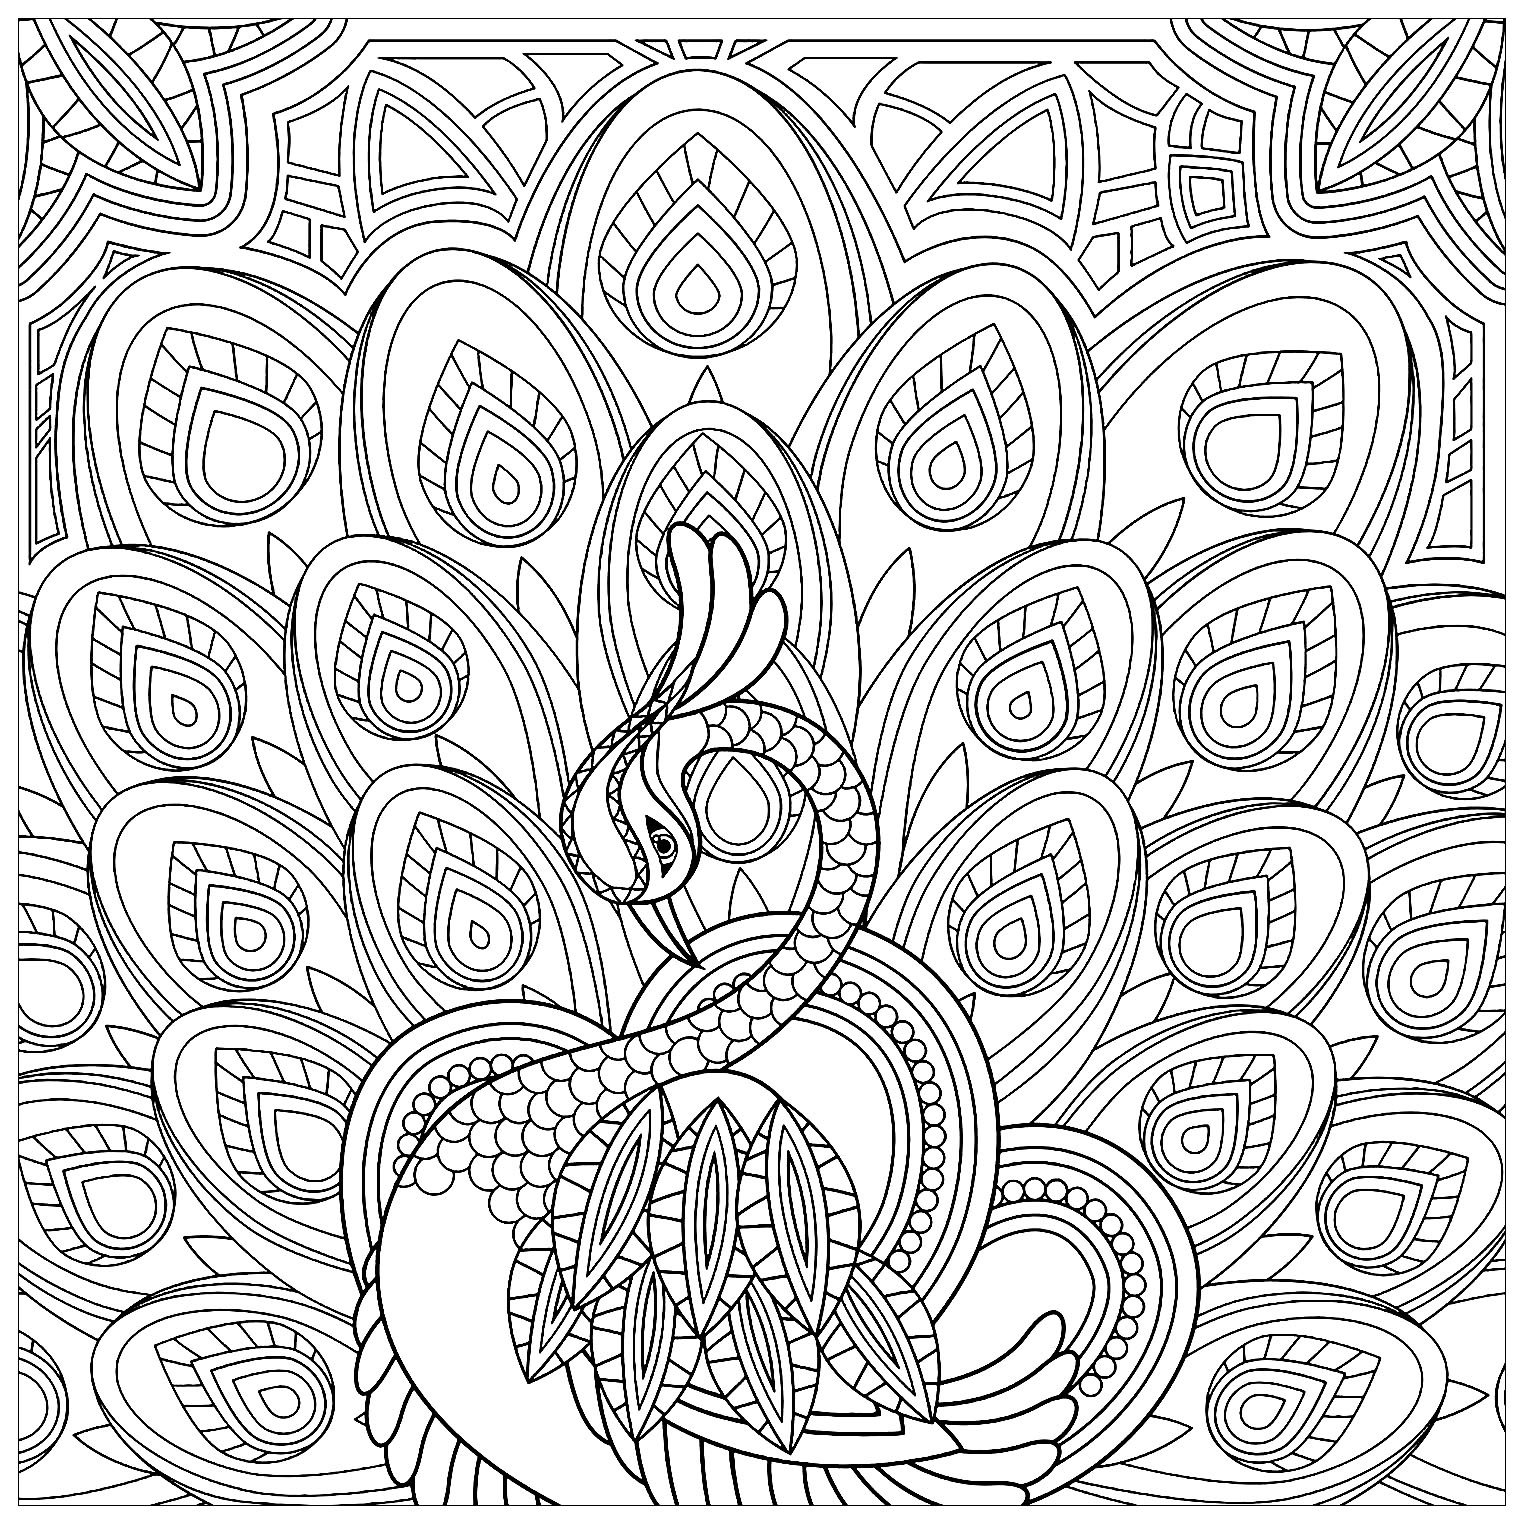 coloring pages of peacock peacock coloring page free printable coloring pages peacock coloring pages of